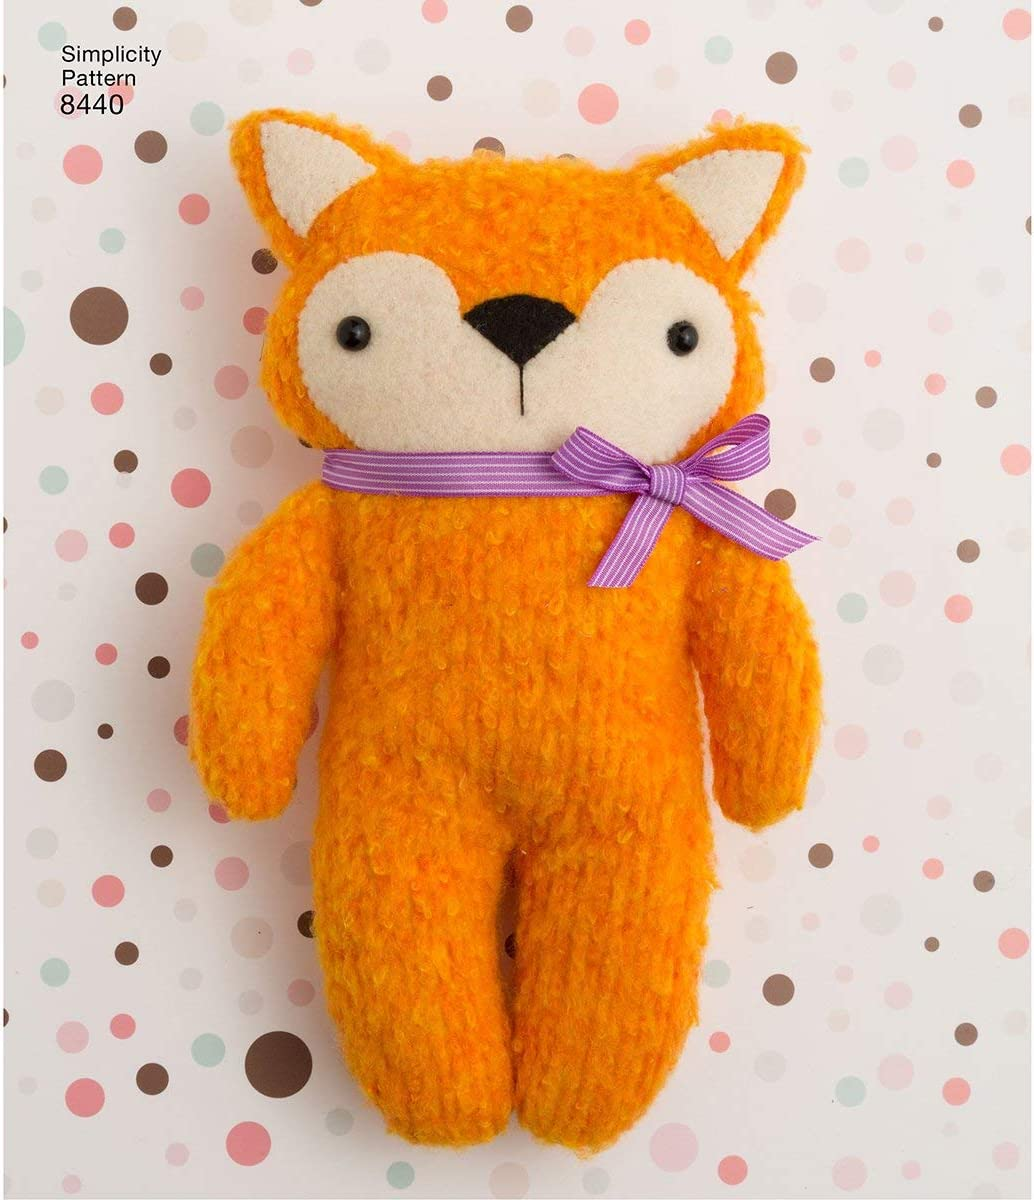 Simplicity Stuffed Animal Sewing Patterns for Children, One Size Only